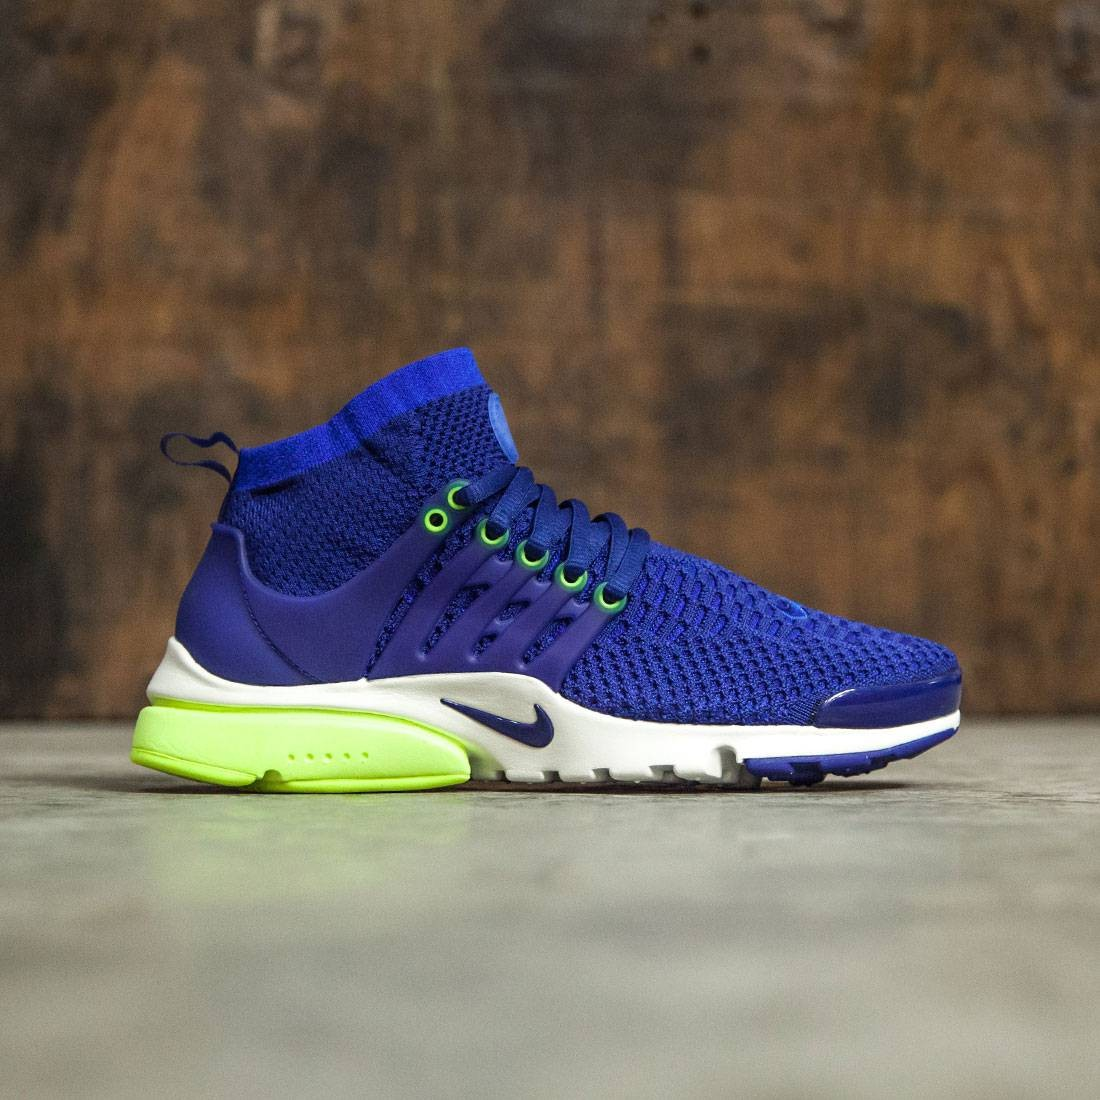 big sale a8879 1fef7 Nike Women Women'S Nike Air Presto Flyknit Ultra Shoe (deep royal blue /  racer blue-volt)